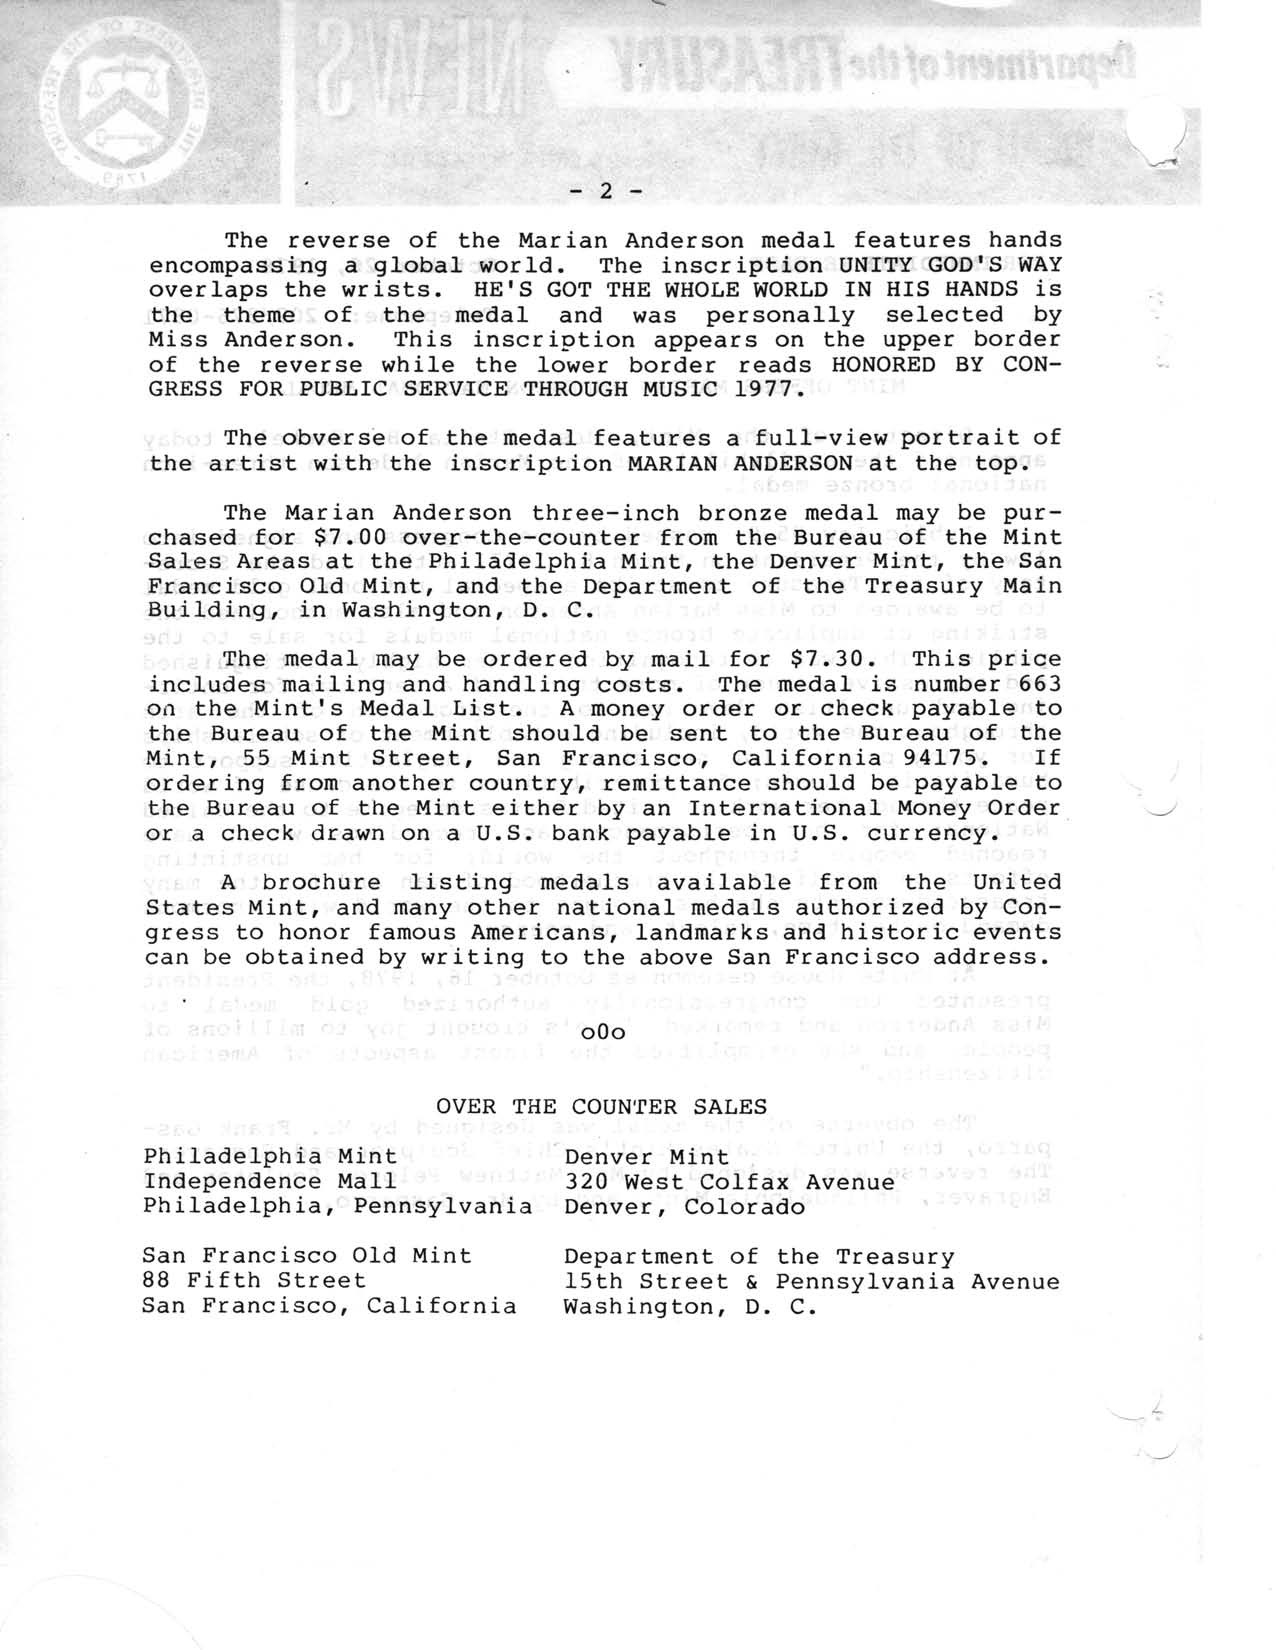 Historic Press Release: Marian Anderson National Medal, Page 2